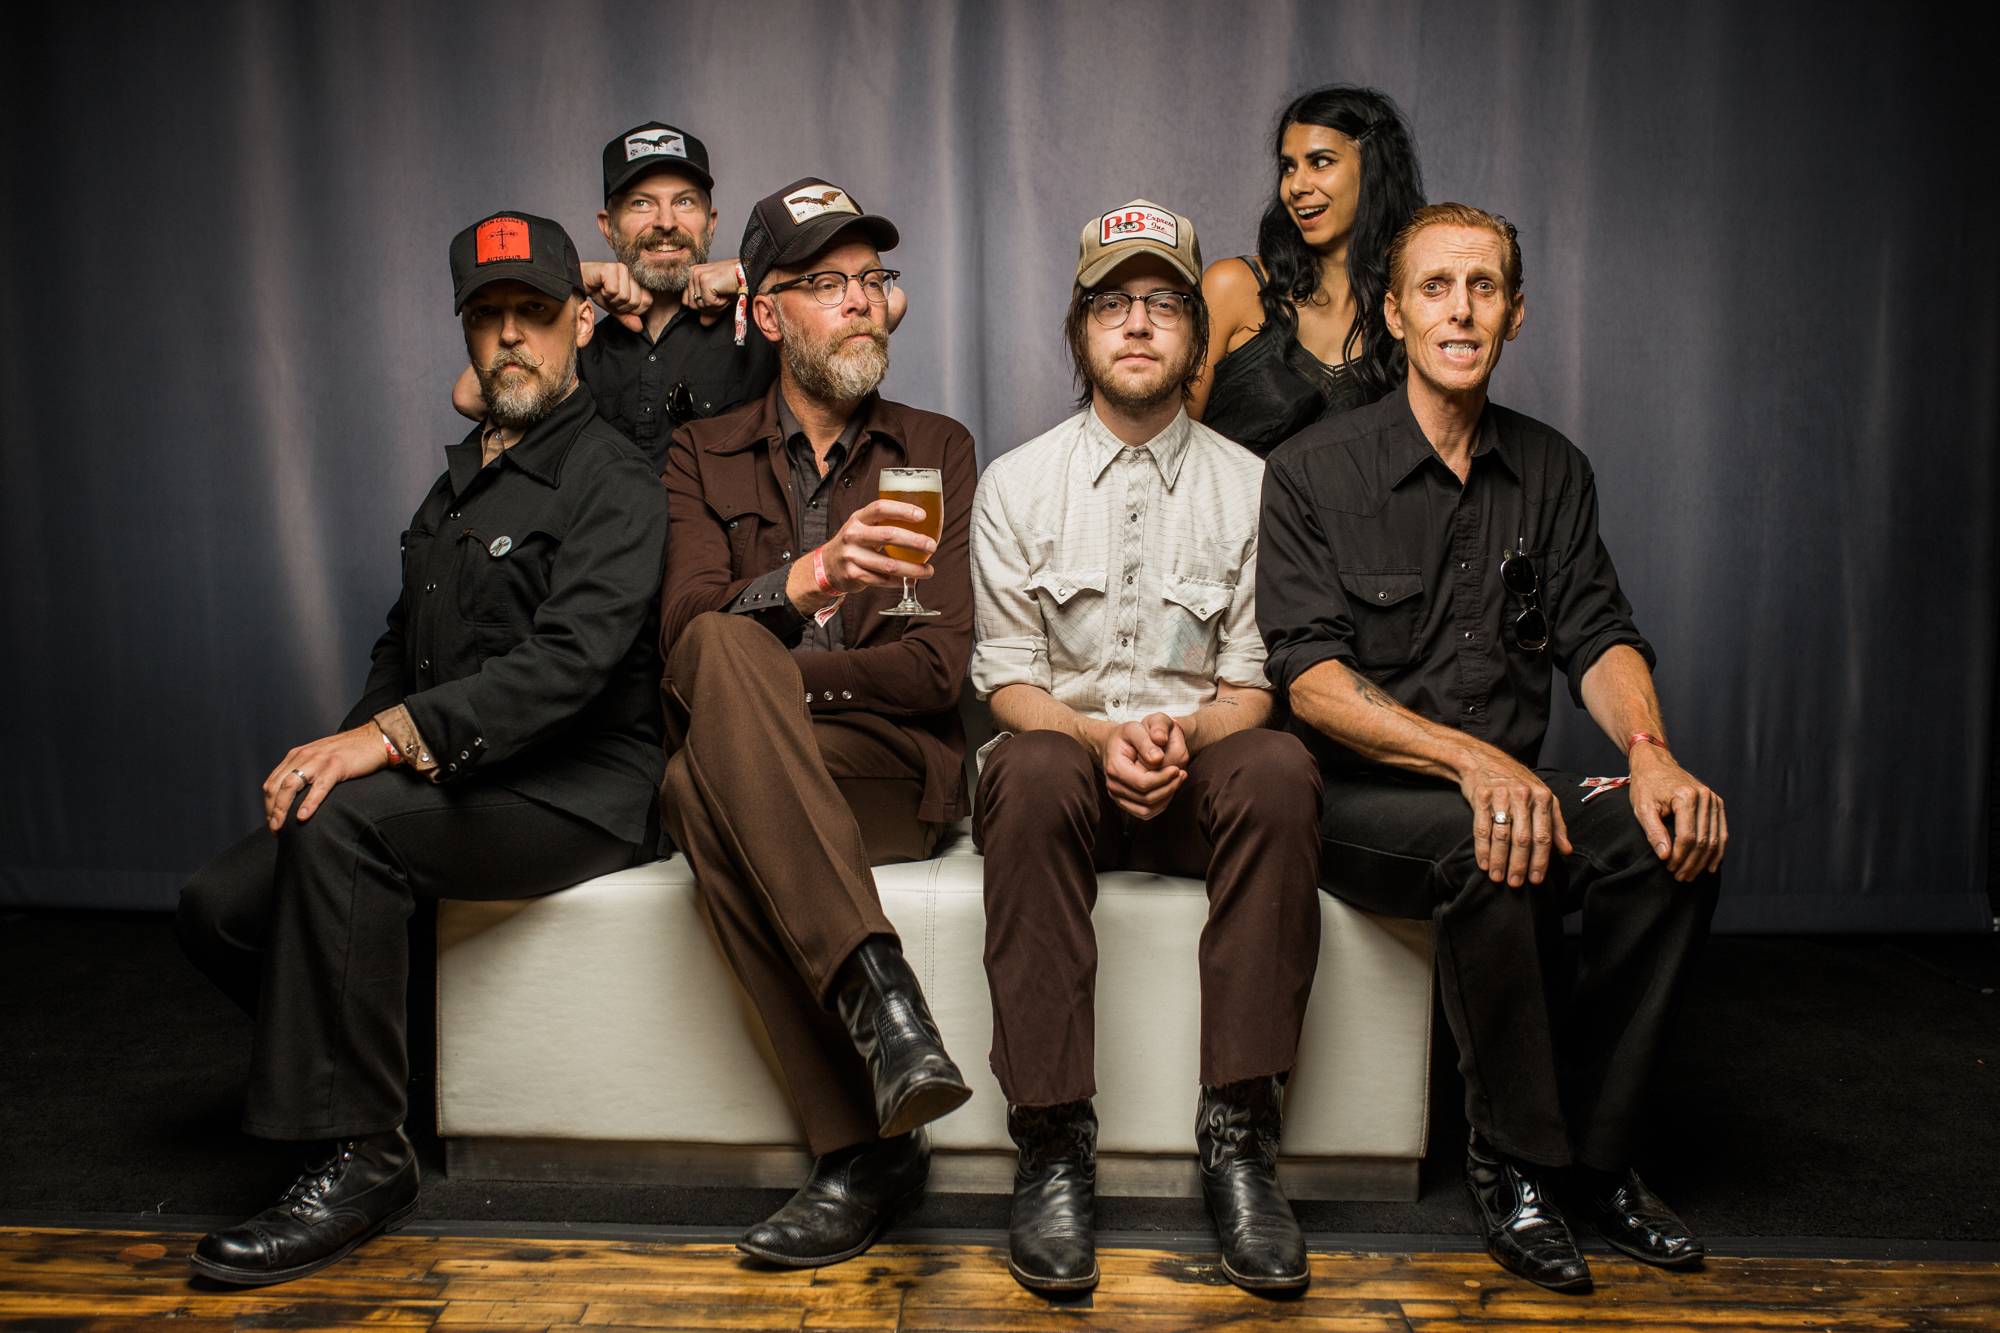 slim cessna's auto club group photo munly george andrew warner rebecca vera lord dwight pentacost seated sitting smiling happy